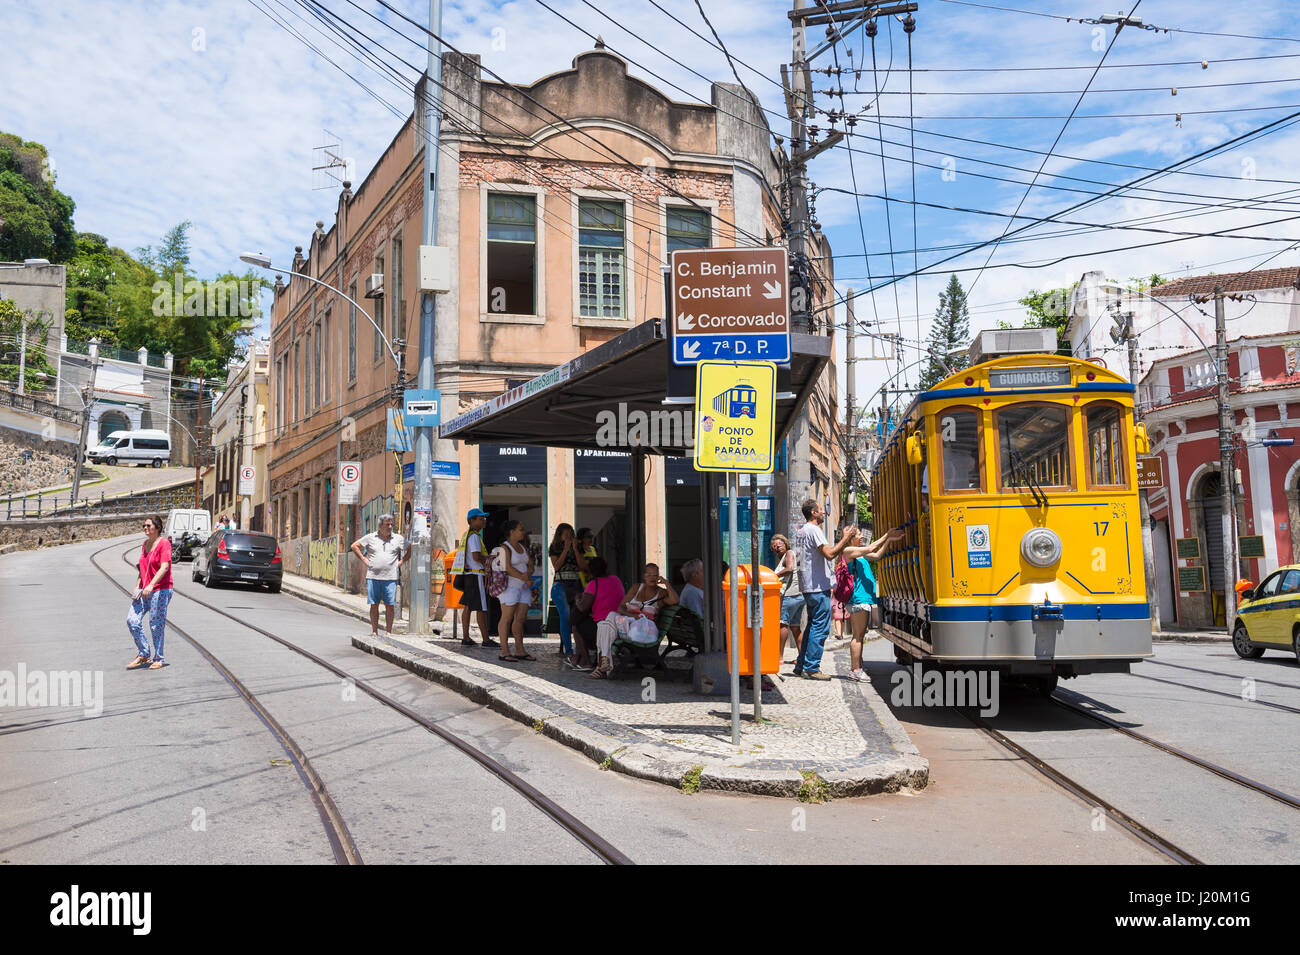 RIO DE JANEIRO - JANUARY 31, 2017: Passengers in Santa Teresa embark on an iconic street car, refurbished after - Stock Image